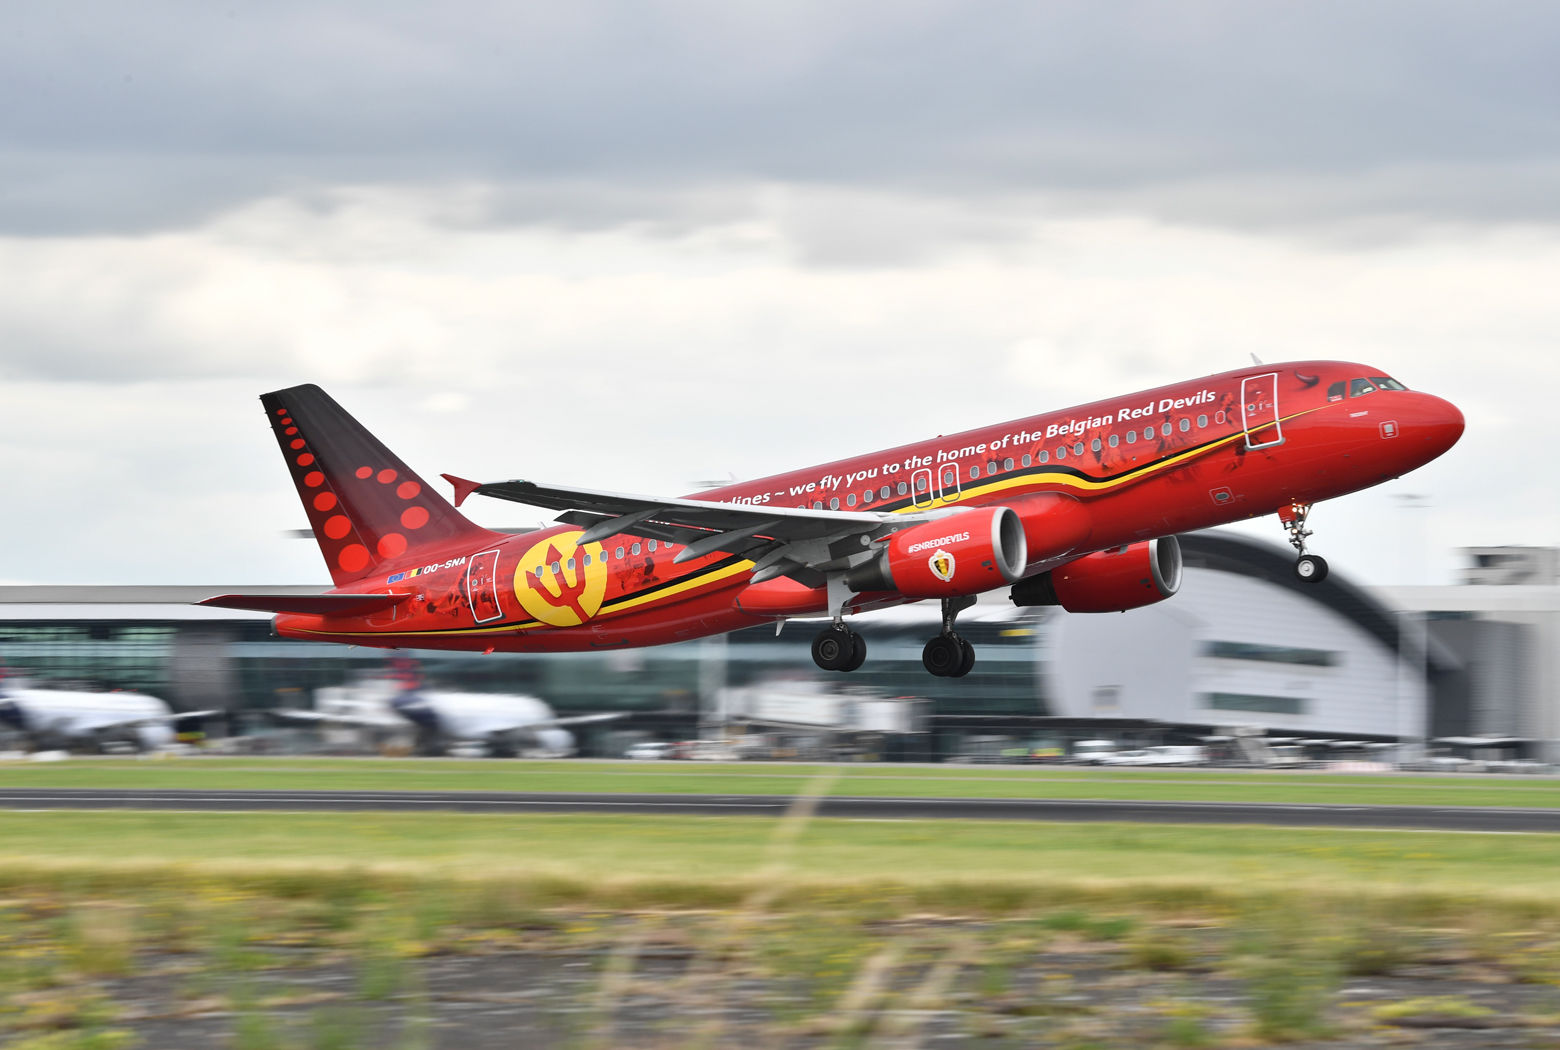 The plane carrying the Belgian national soccer team departures in Brussels, Wednesday, June 13, 2018. The Belgian national team departed to Russia on Wednesday to participate in the World Cup soccer. (AP Photo/Geert Vanden Wijngaert)